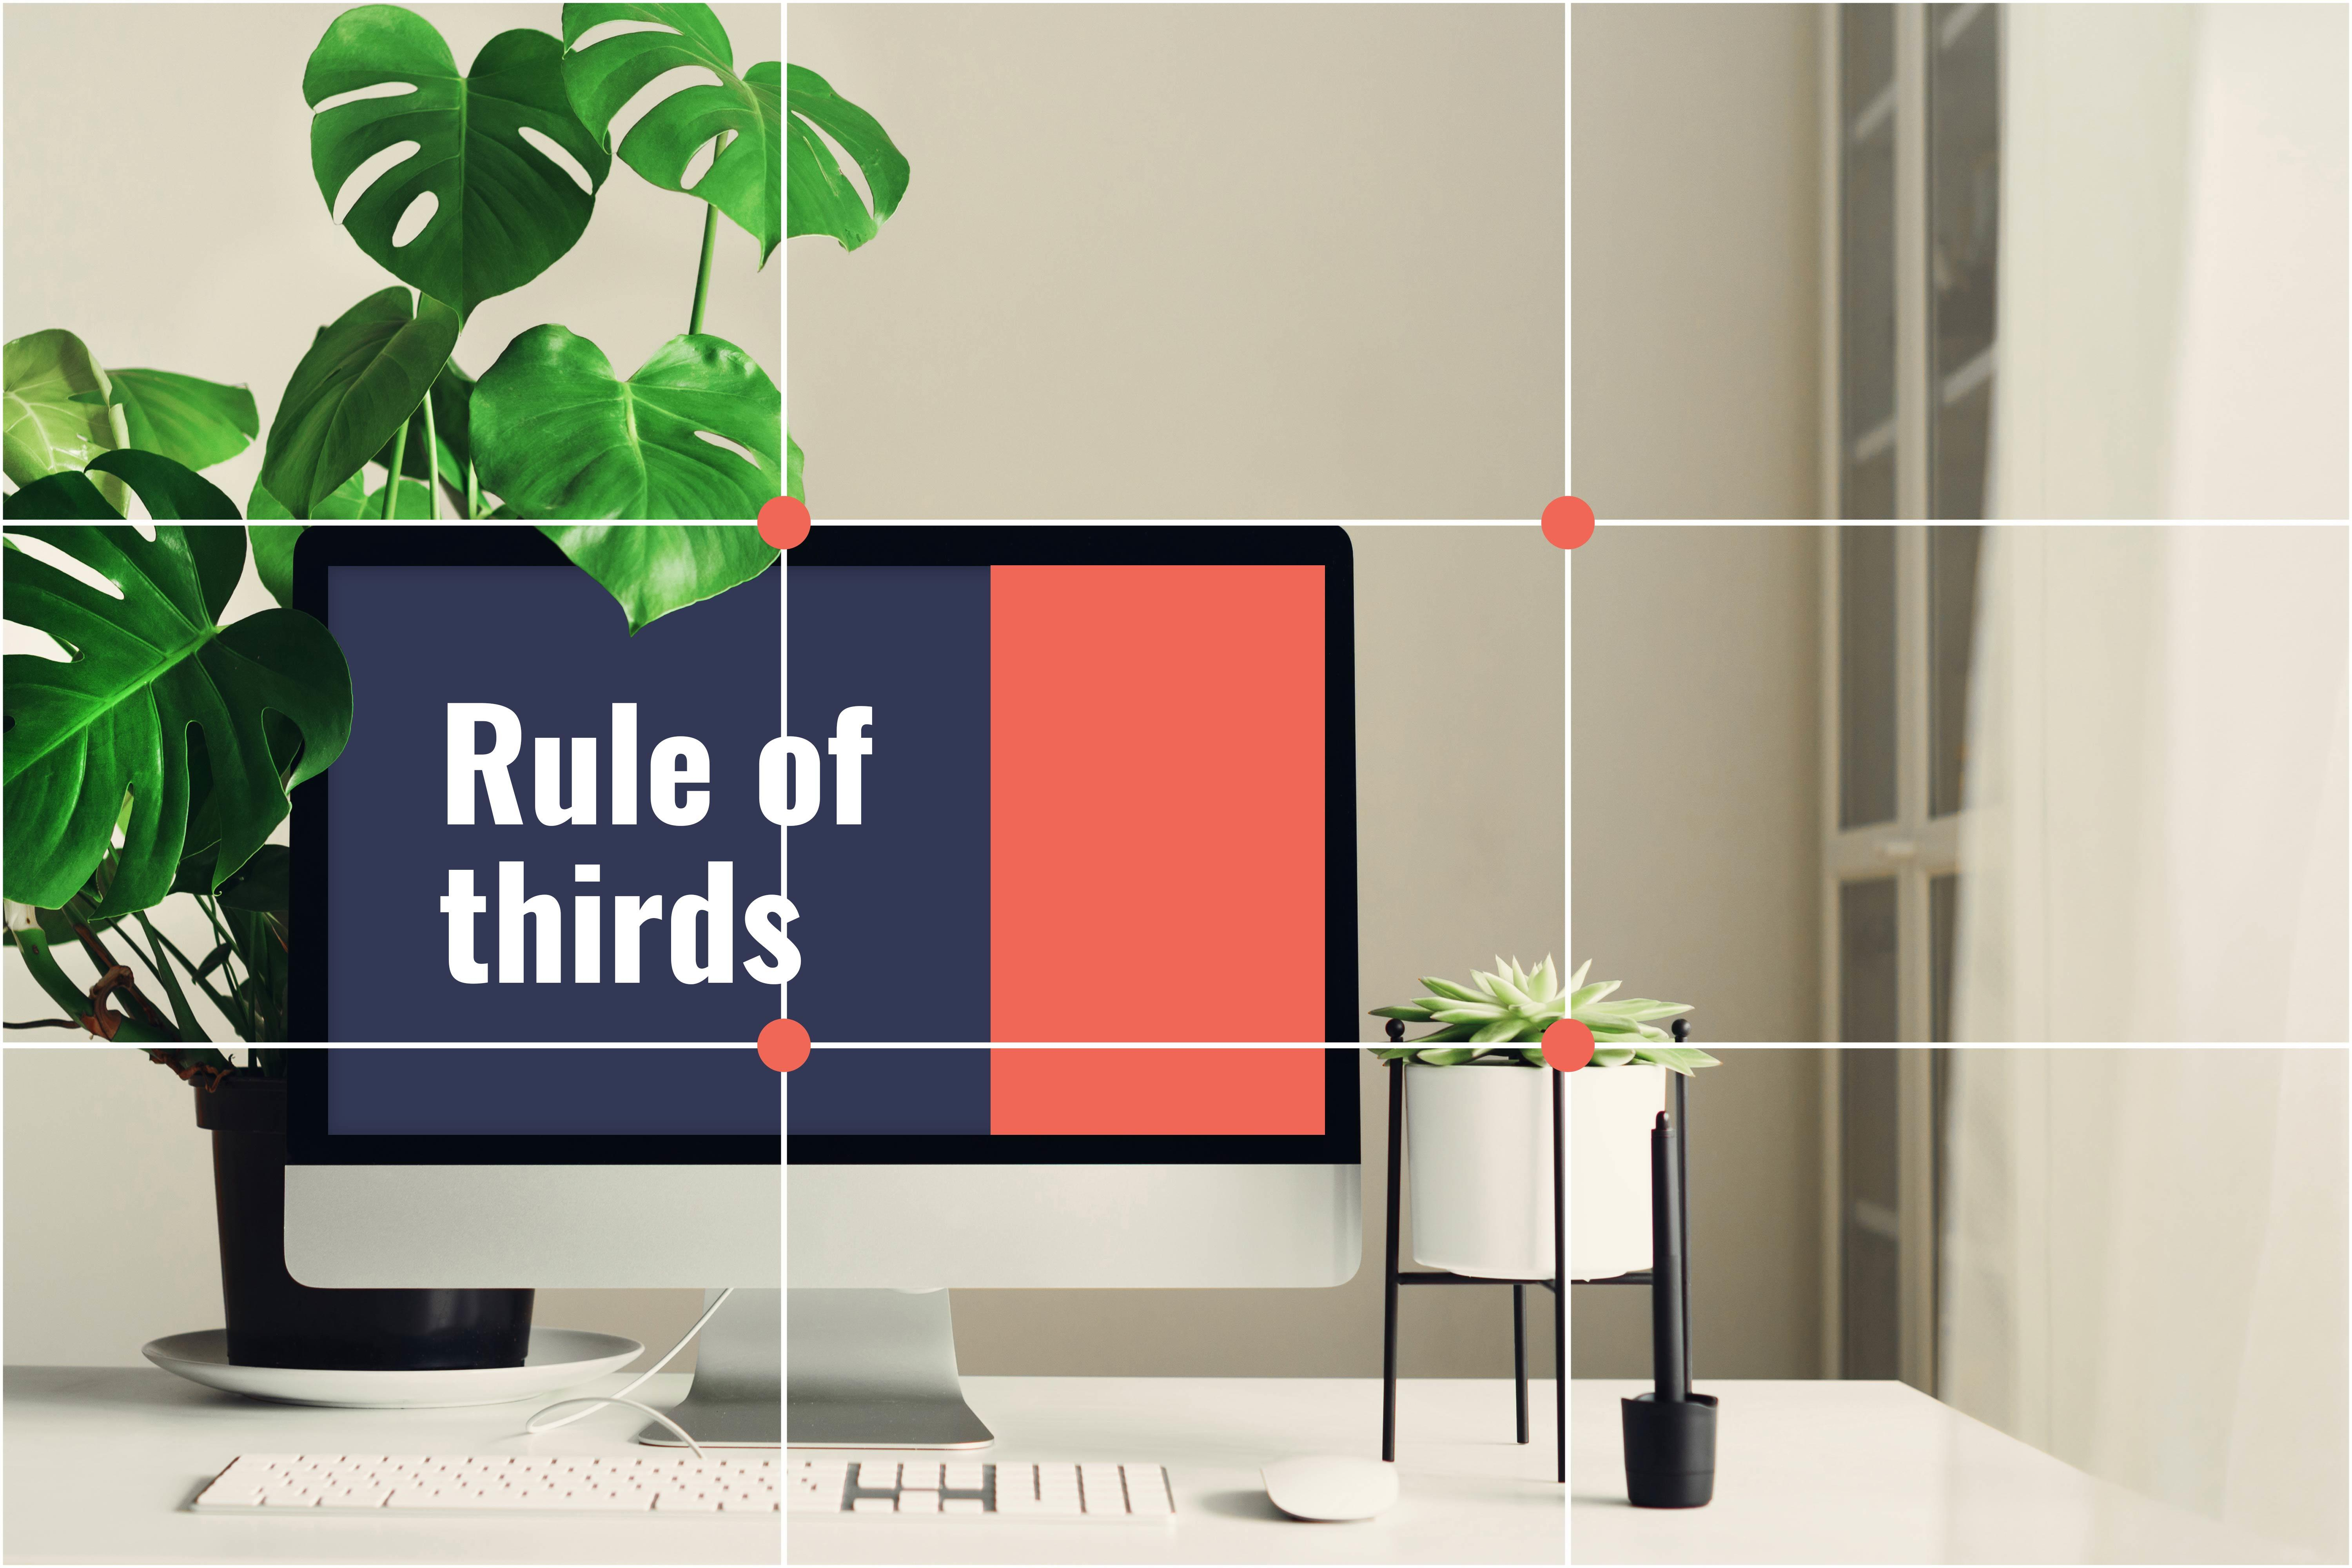 Rule of third examples